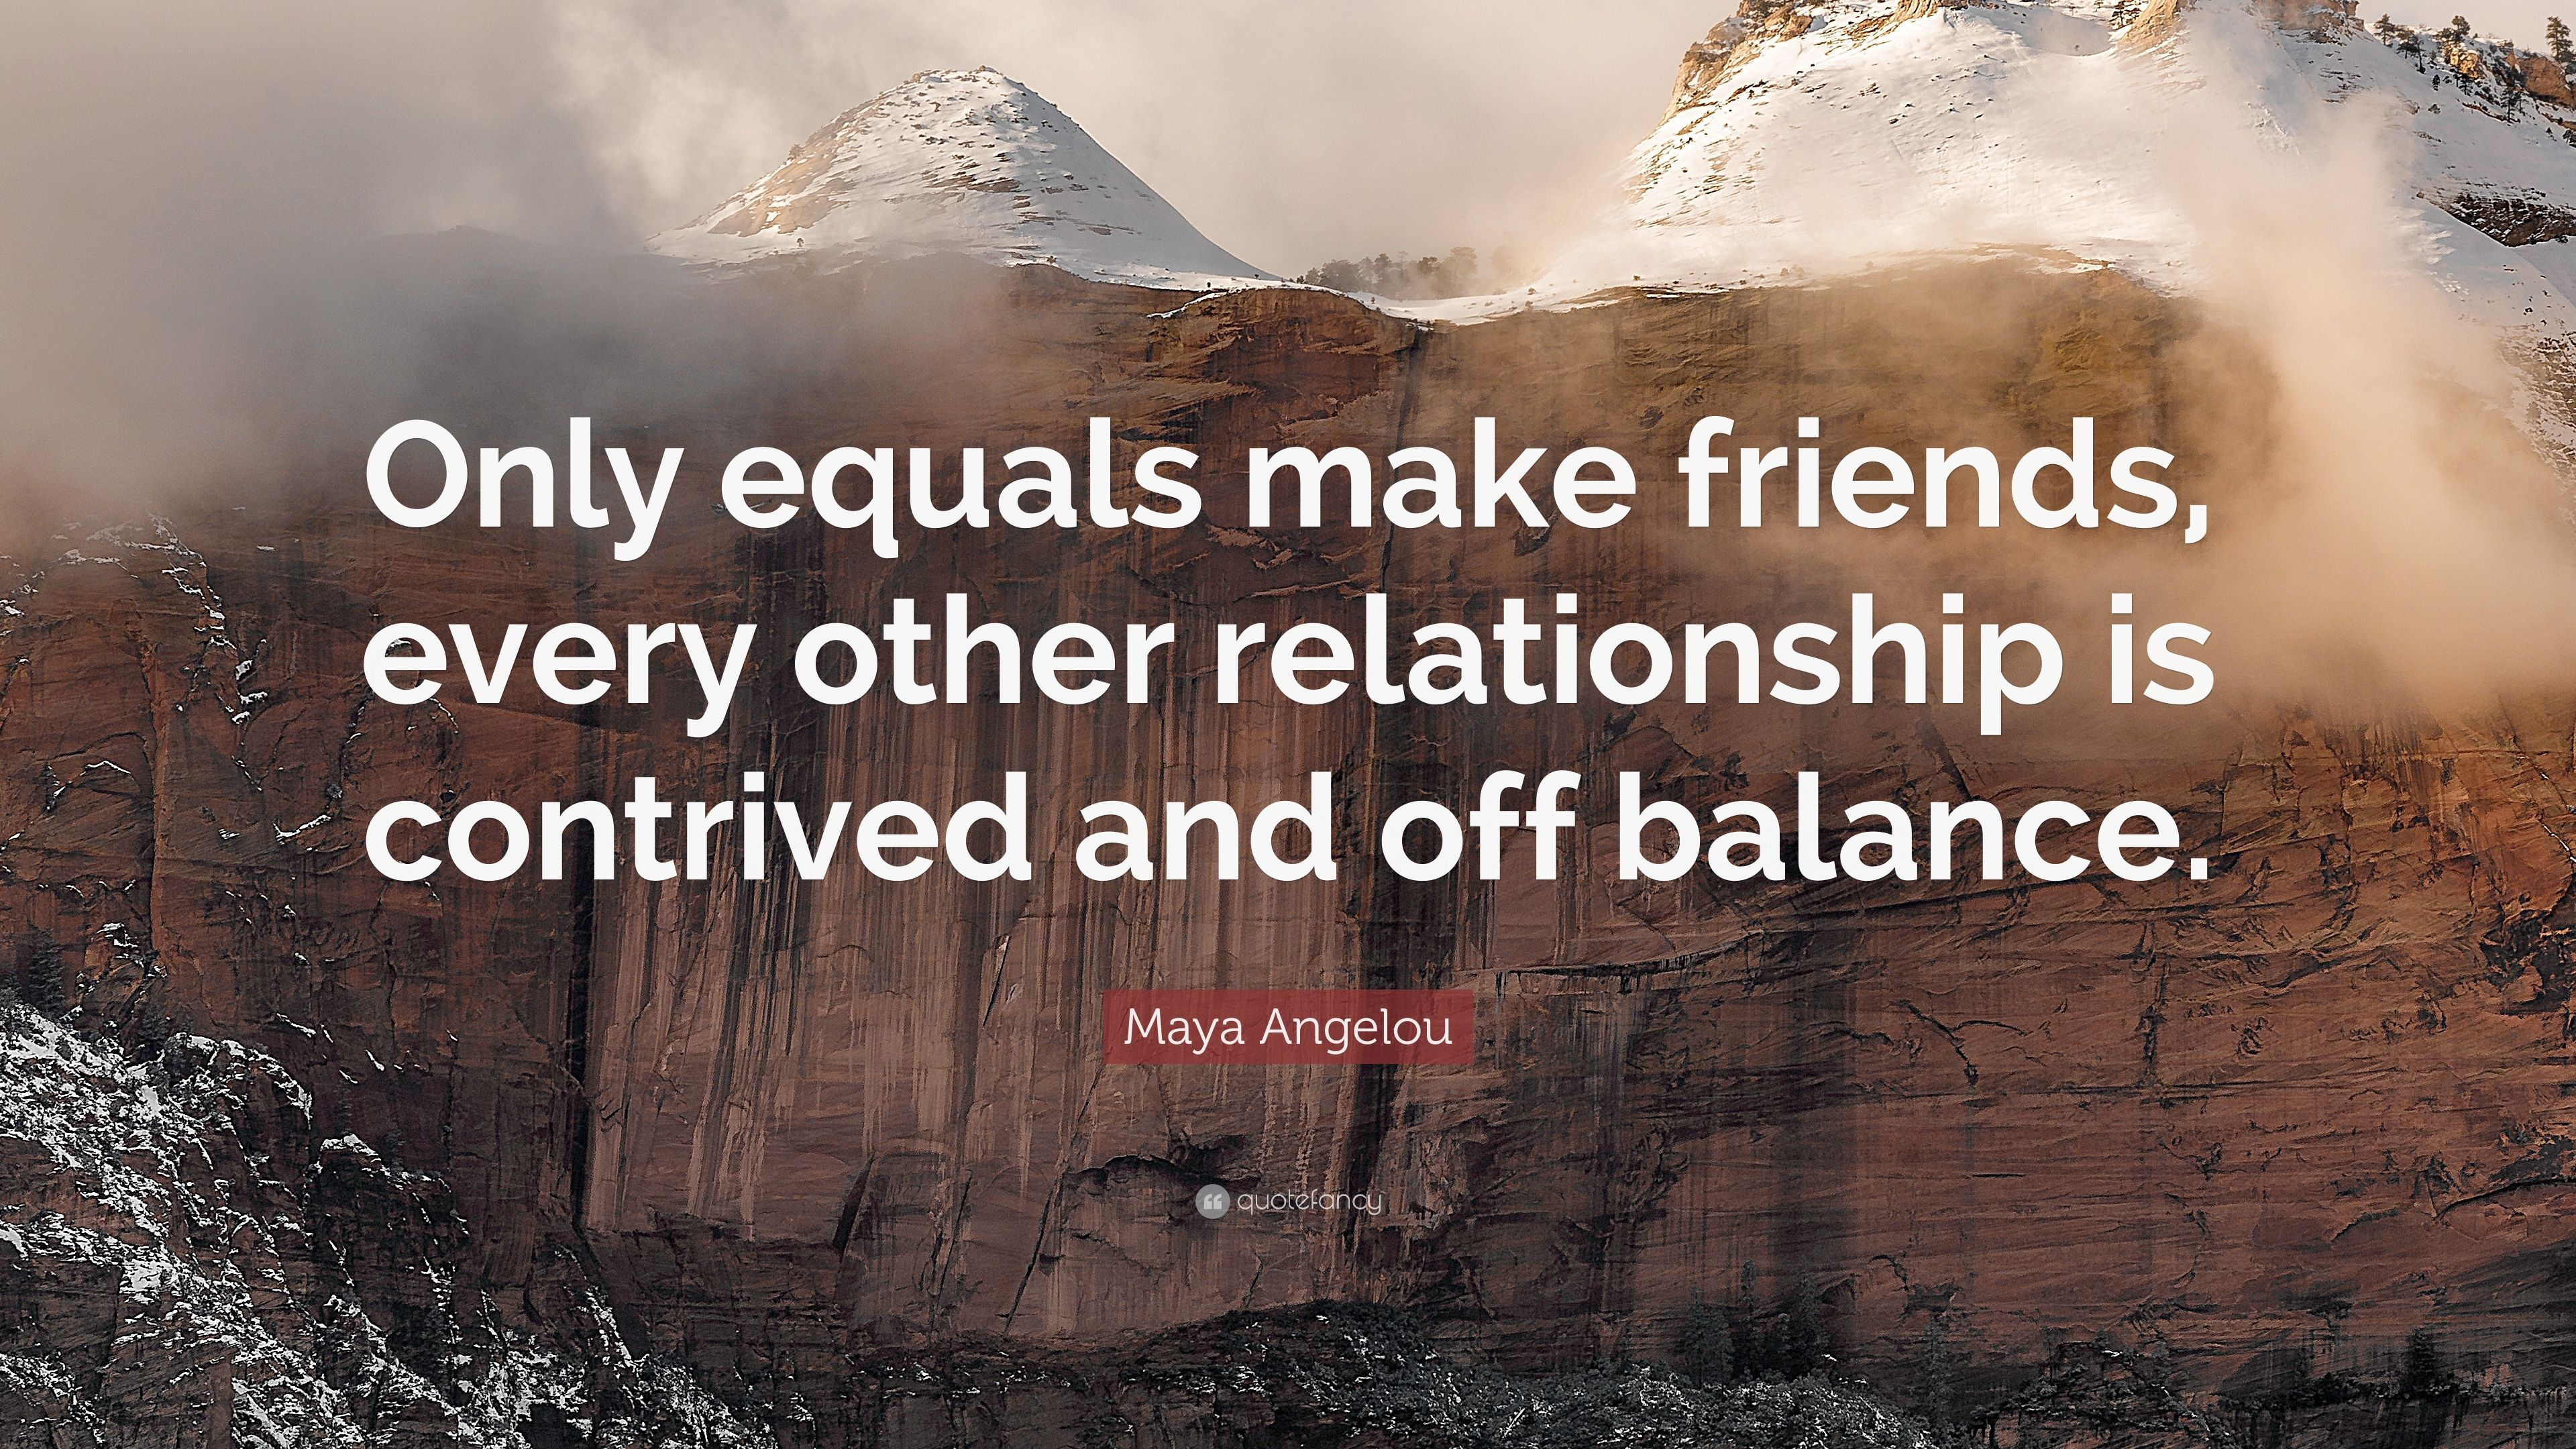 Maya Angelou Quote: U201cOnly Equals Make Friends, Every Other Relationship Is  Contrived And